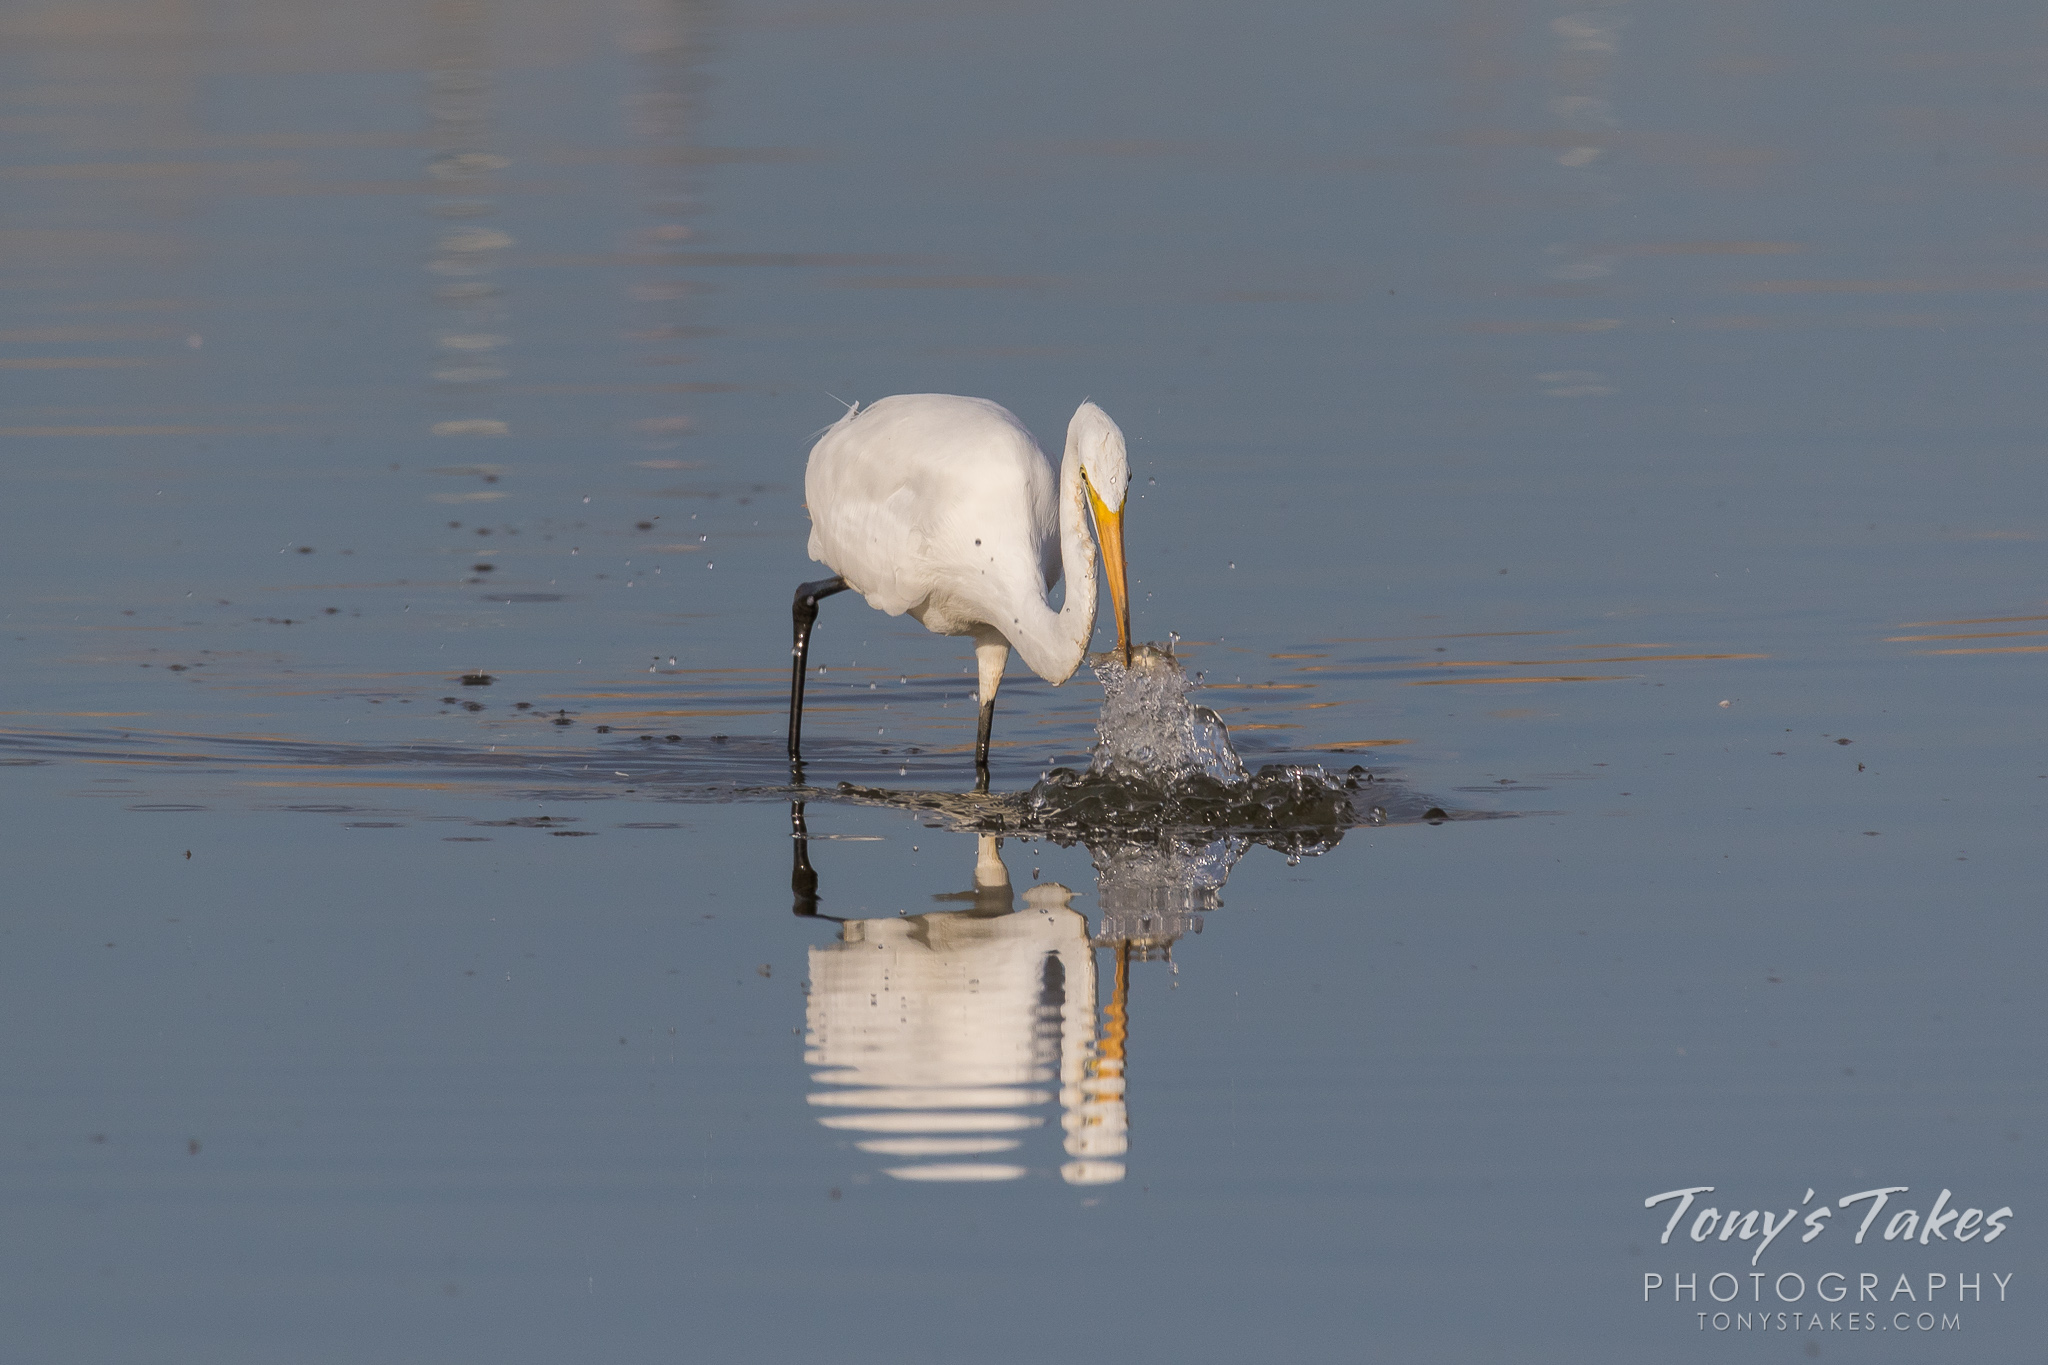 A Great Egret grabs a shad from a pond in northern Colorado.  (© Tony's Takes)